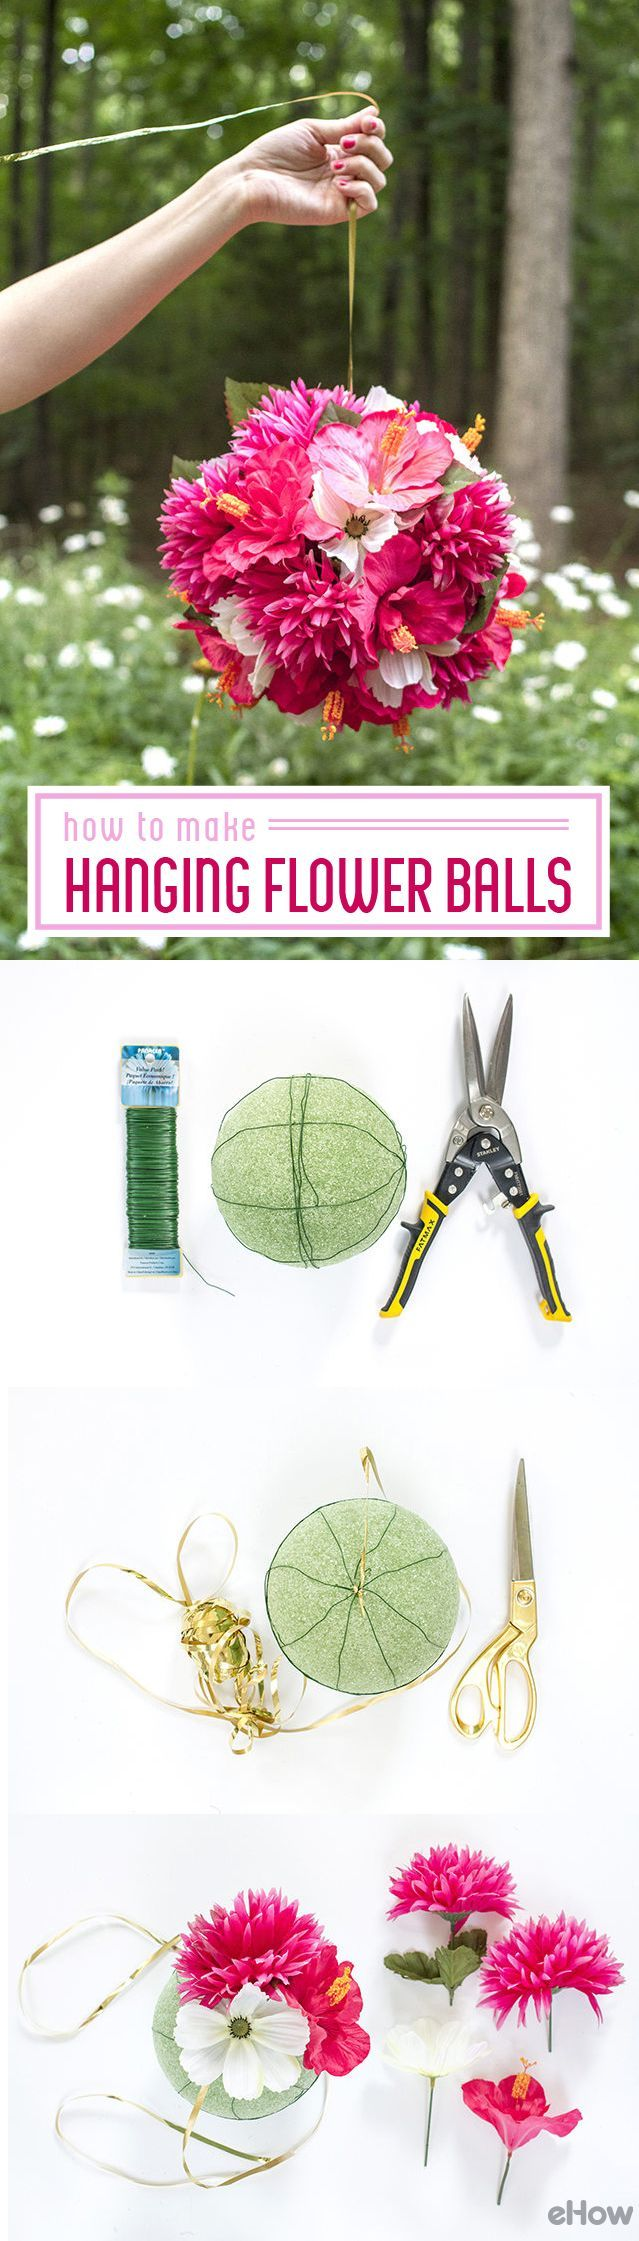 Hanging flower balls instantly light up any room, patio, banquet hall or garden. These are SO easy to make, you can easily make them for every occasion no matter what season! So beautiful. http://www.ehow.com/how_4787906_make-hanging-flower-balls-wedding.html?utm_source=pinterest.com